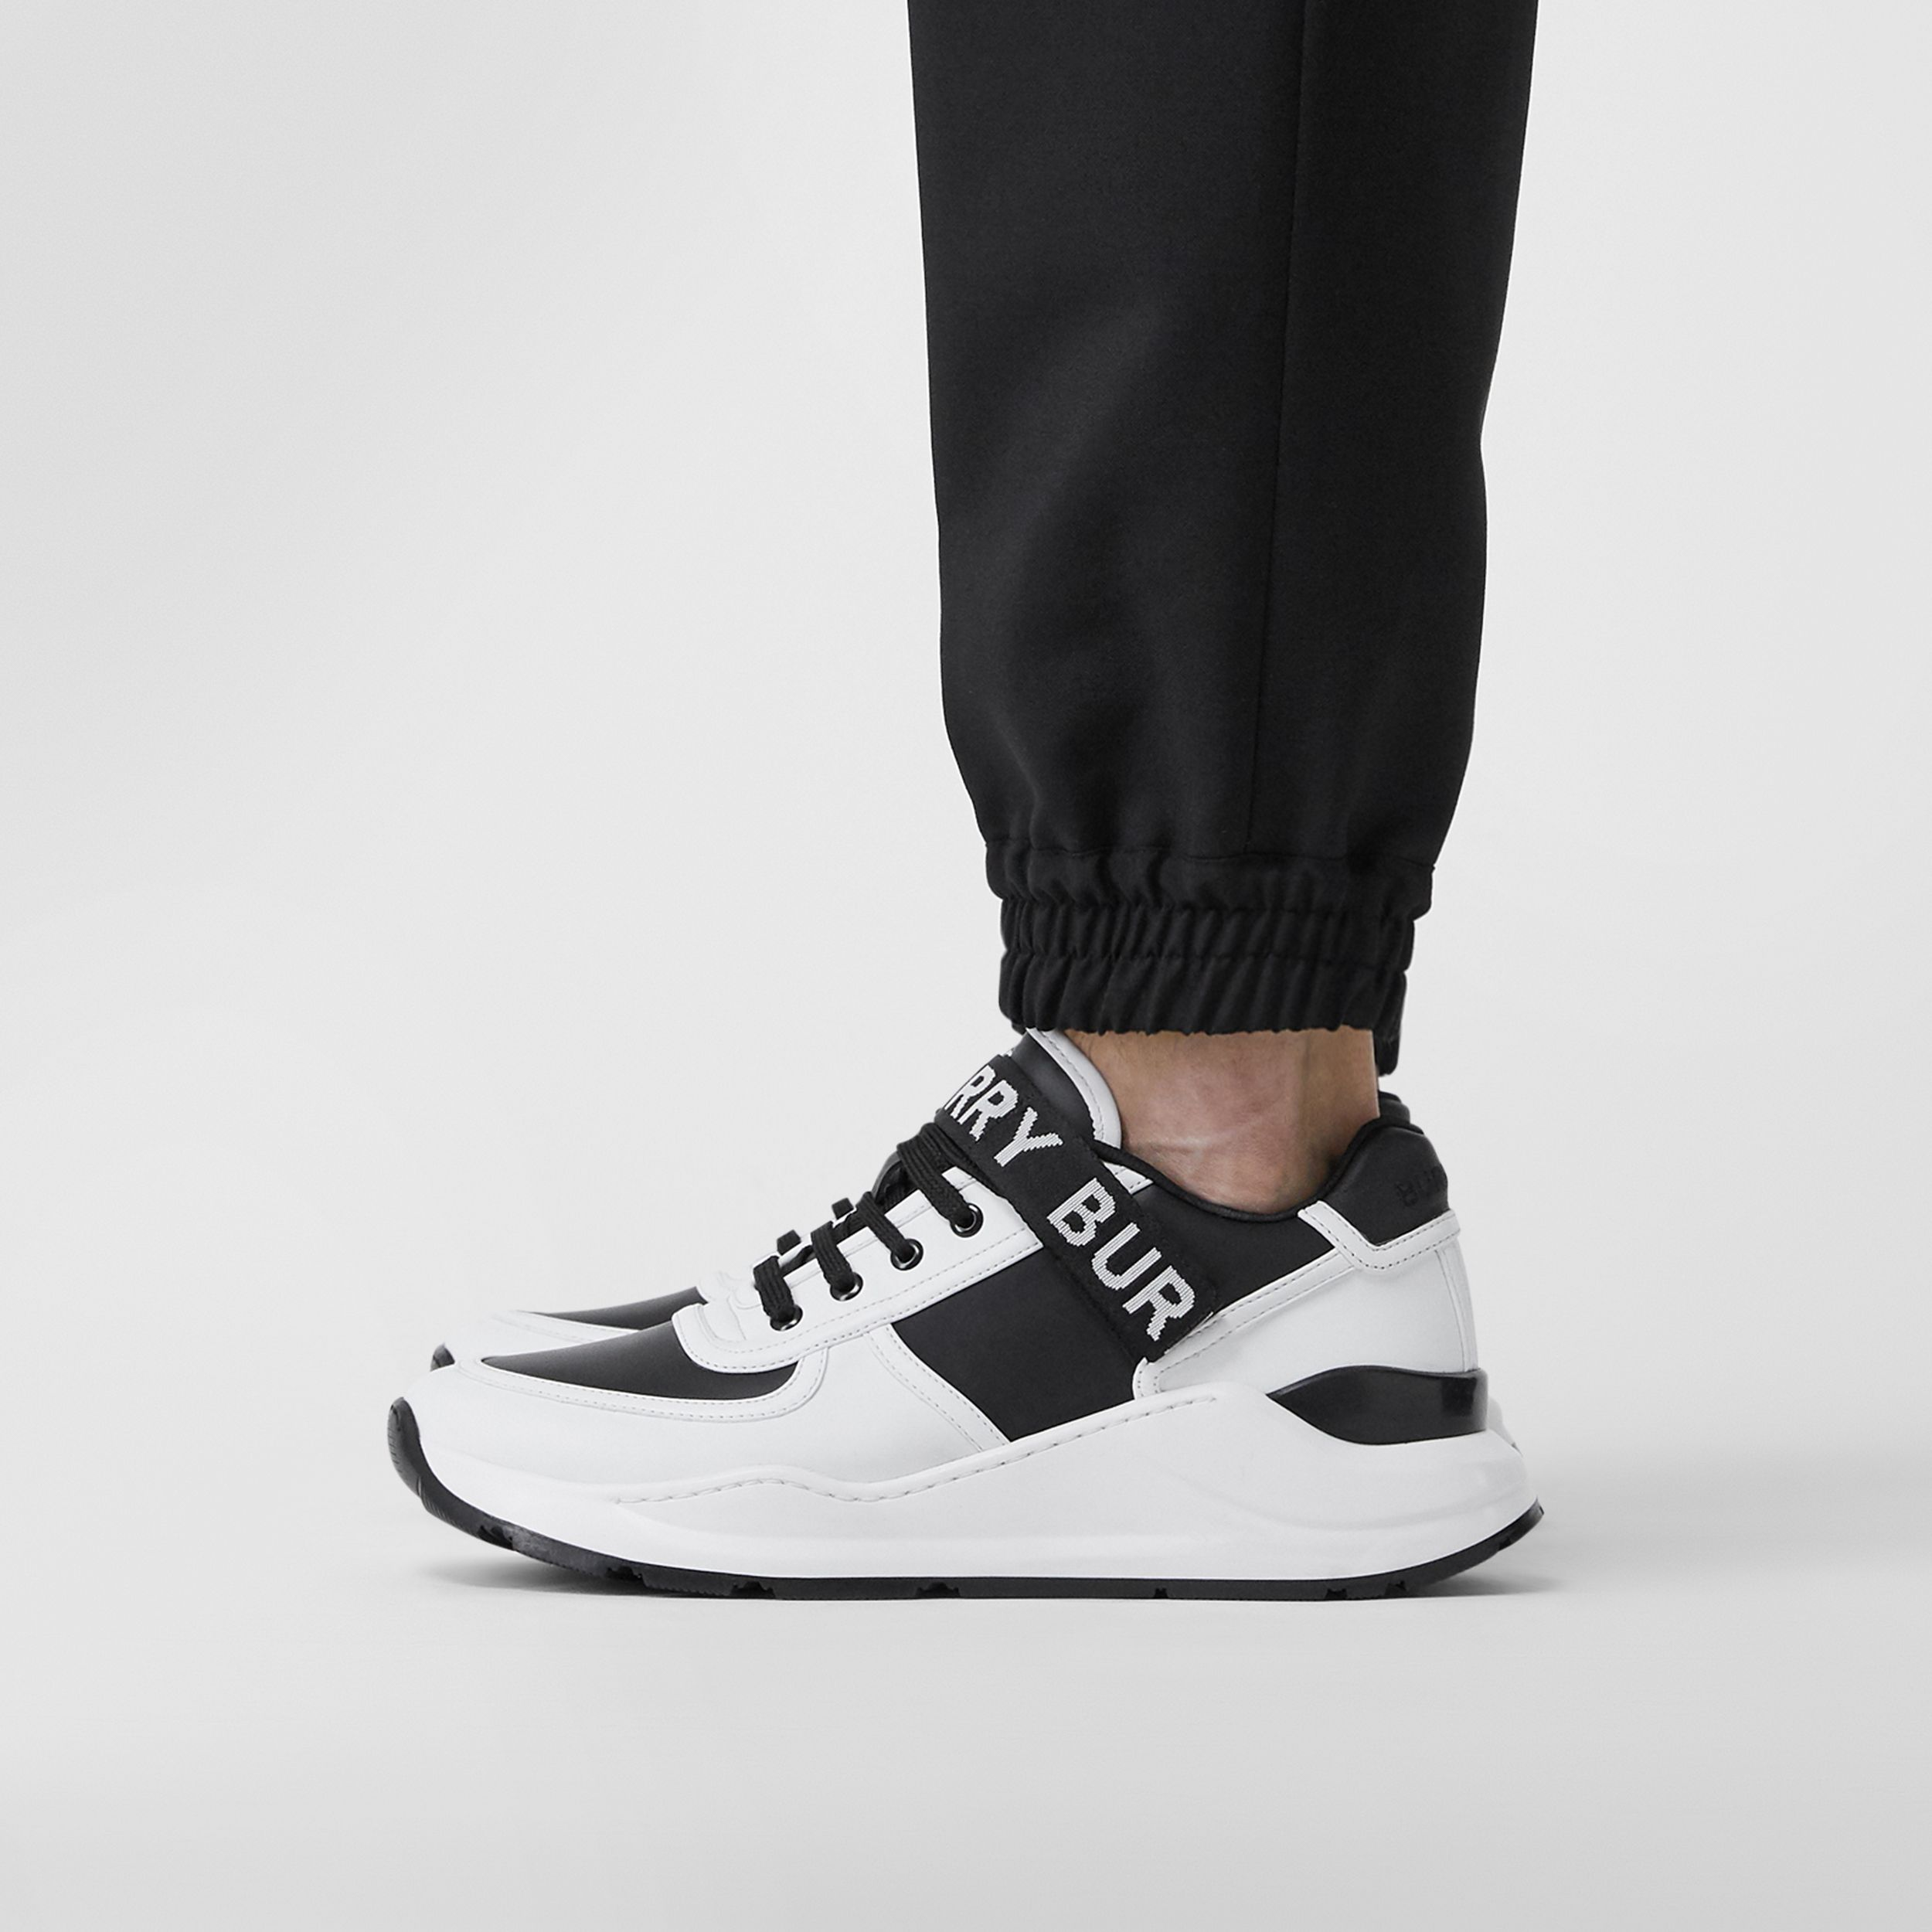 Logo Detail Leather and Nylon Sneakers in Black/optic White - Men | Burberry - 3